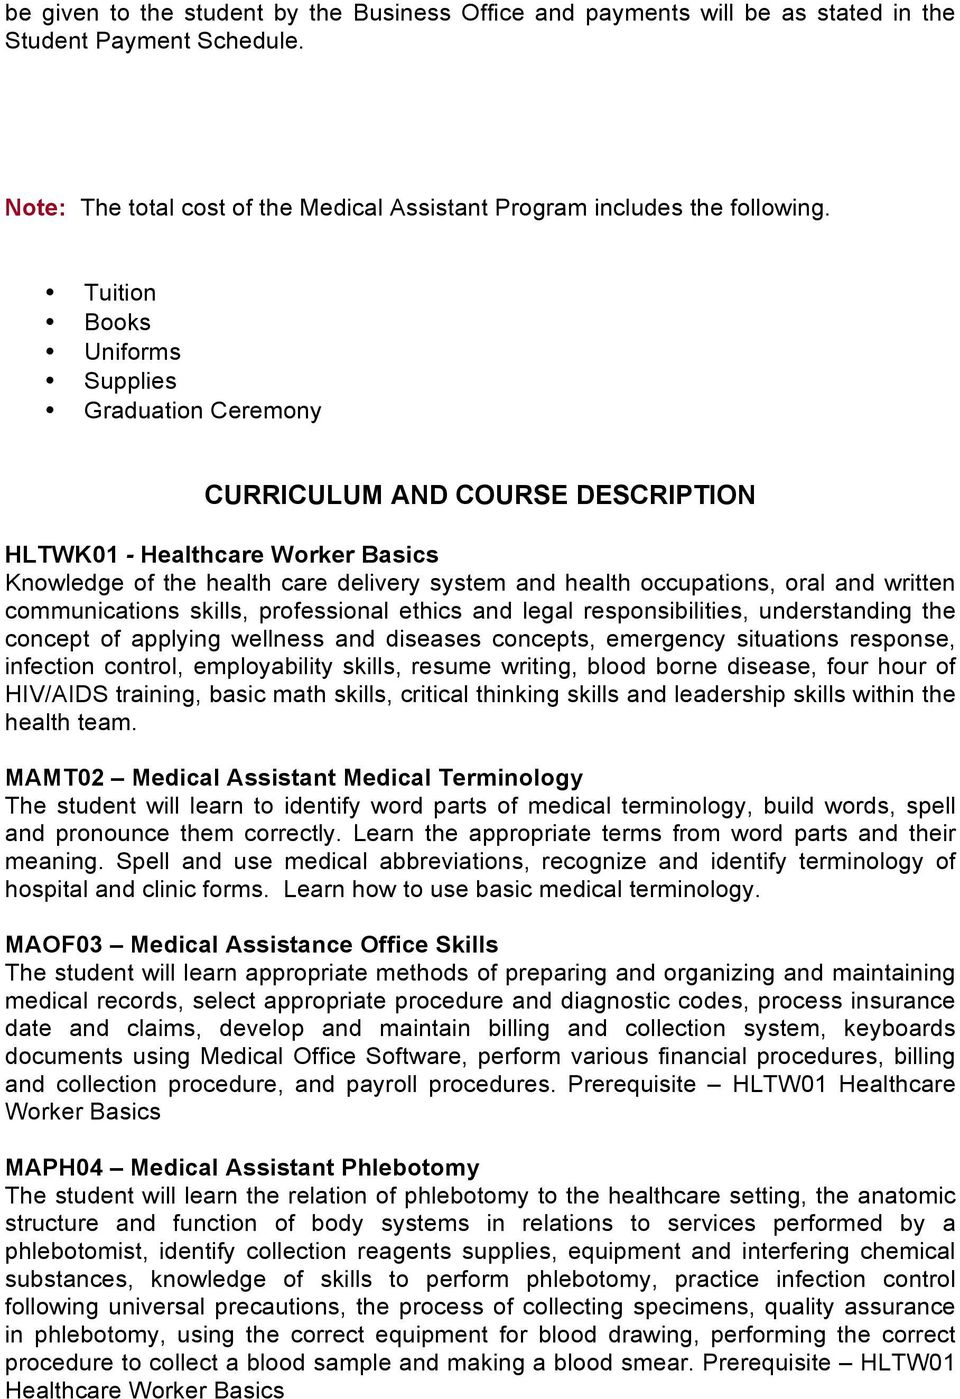 skills needed for medical assistant